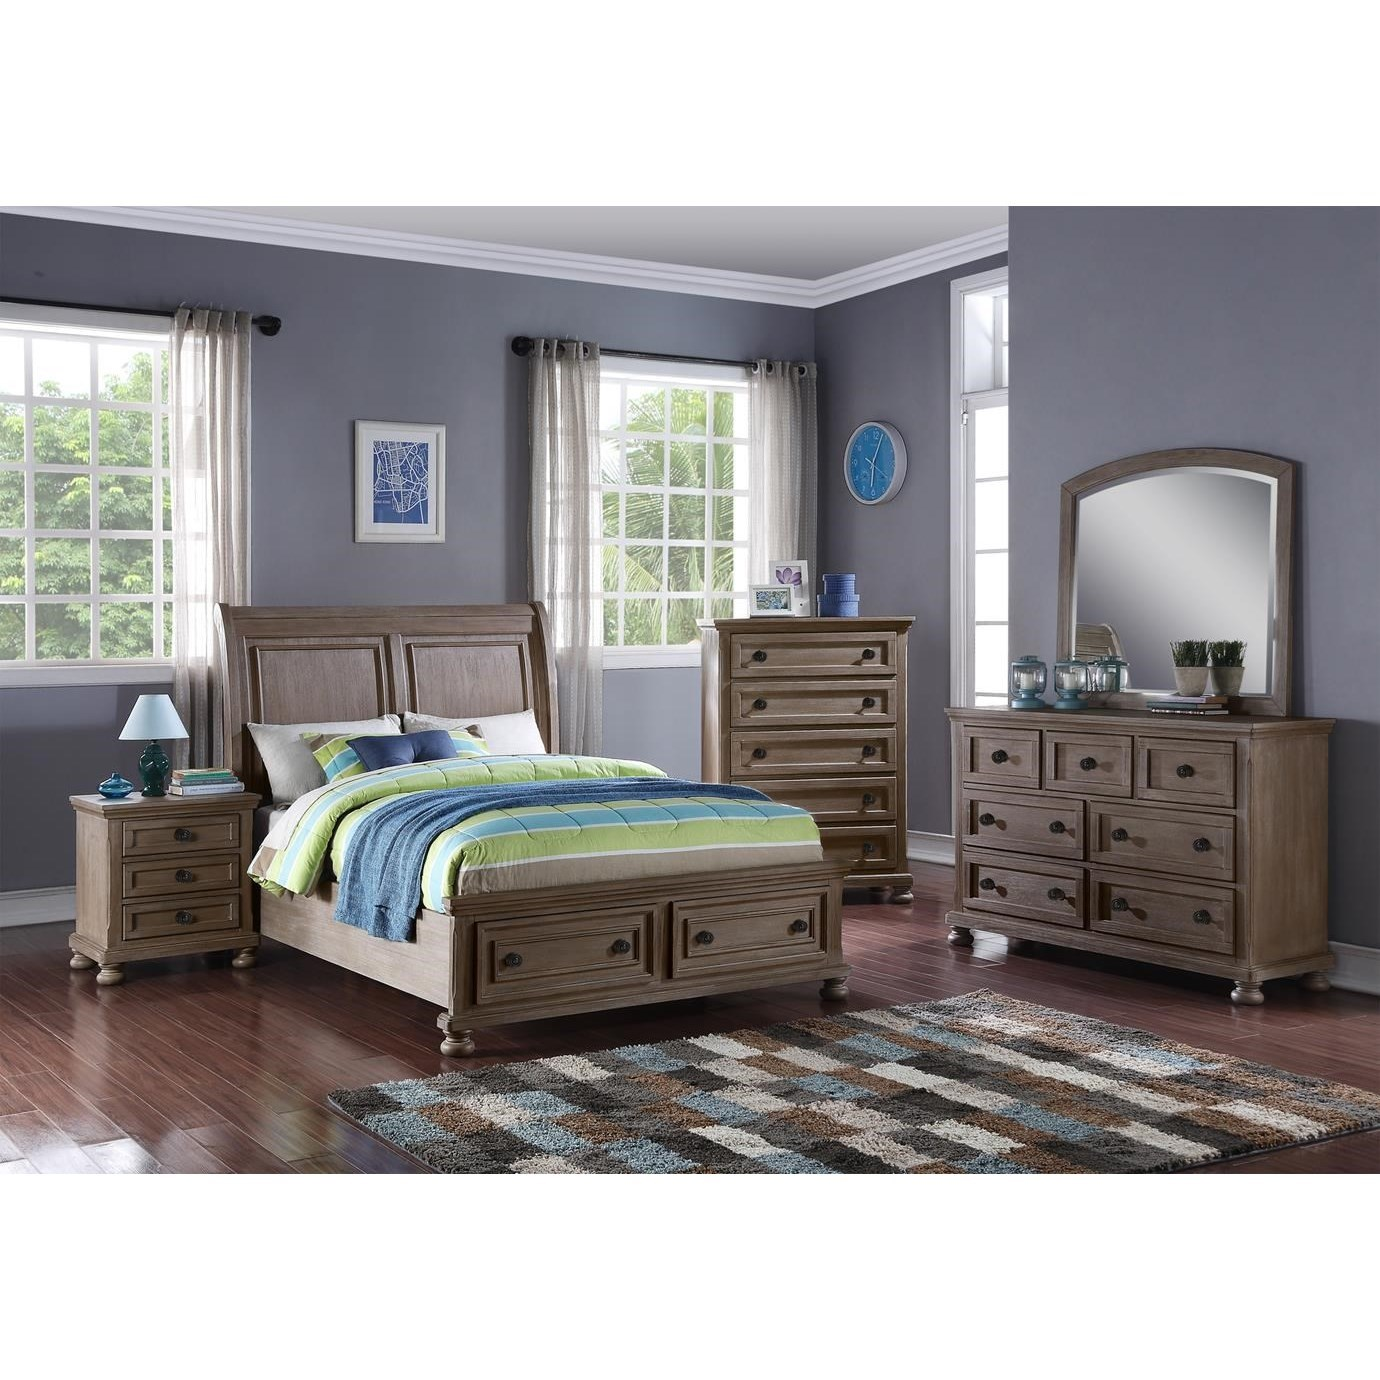 Allegra Twin Bedroom Group by New Classic at Beds N Stuff